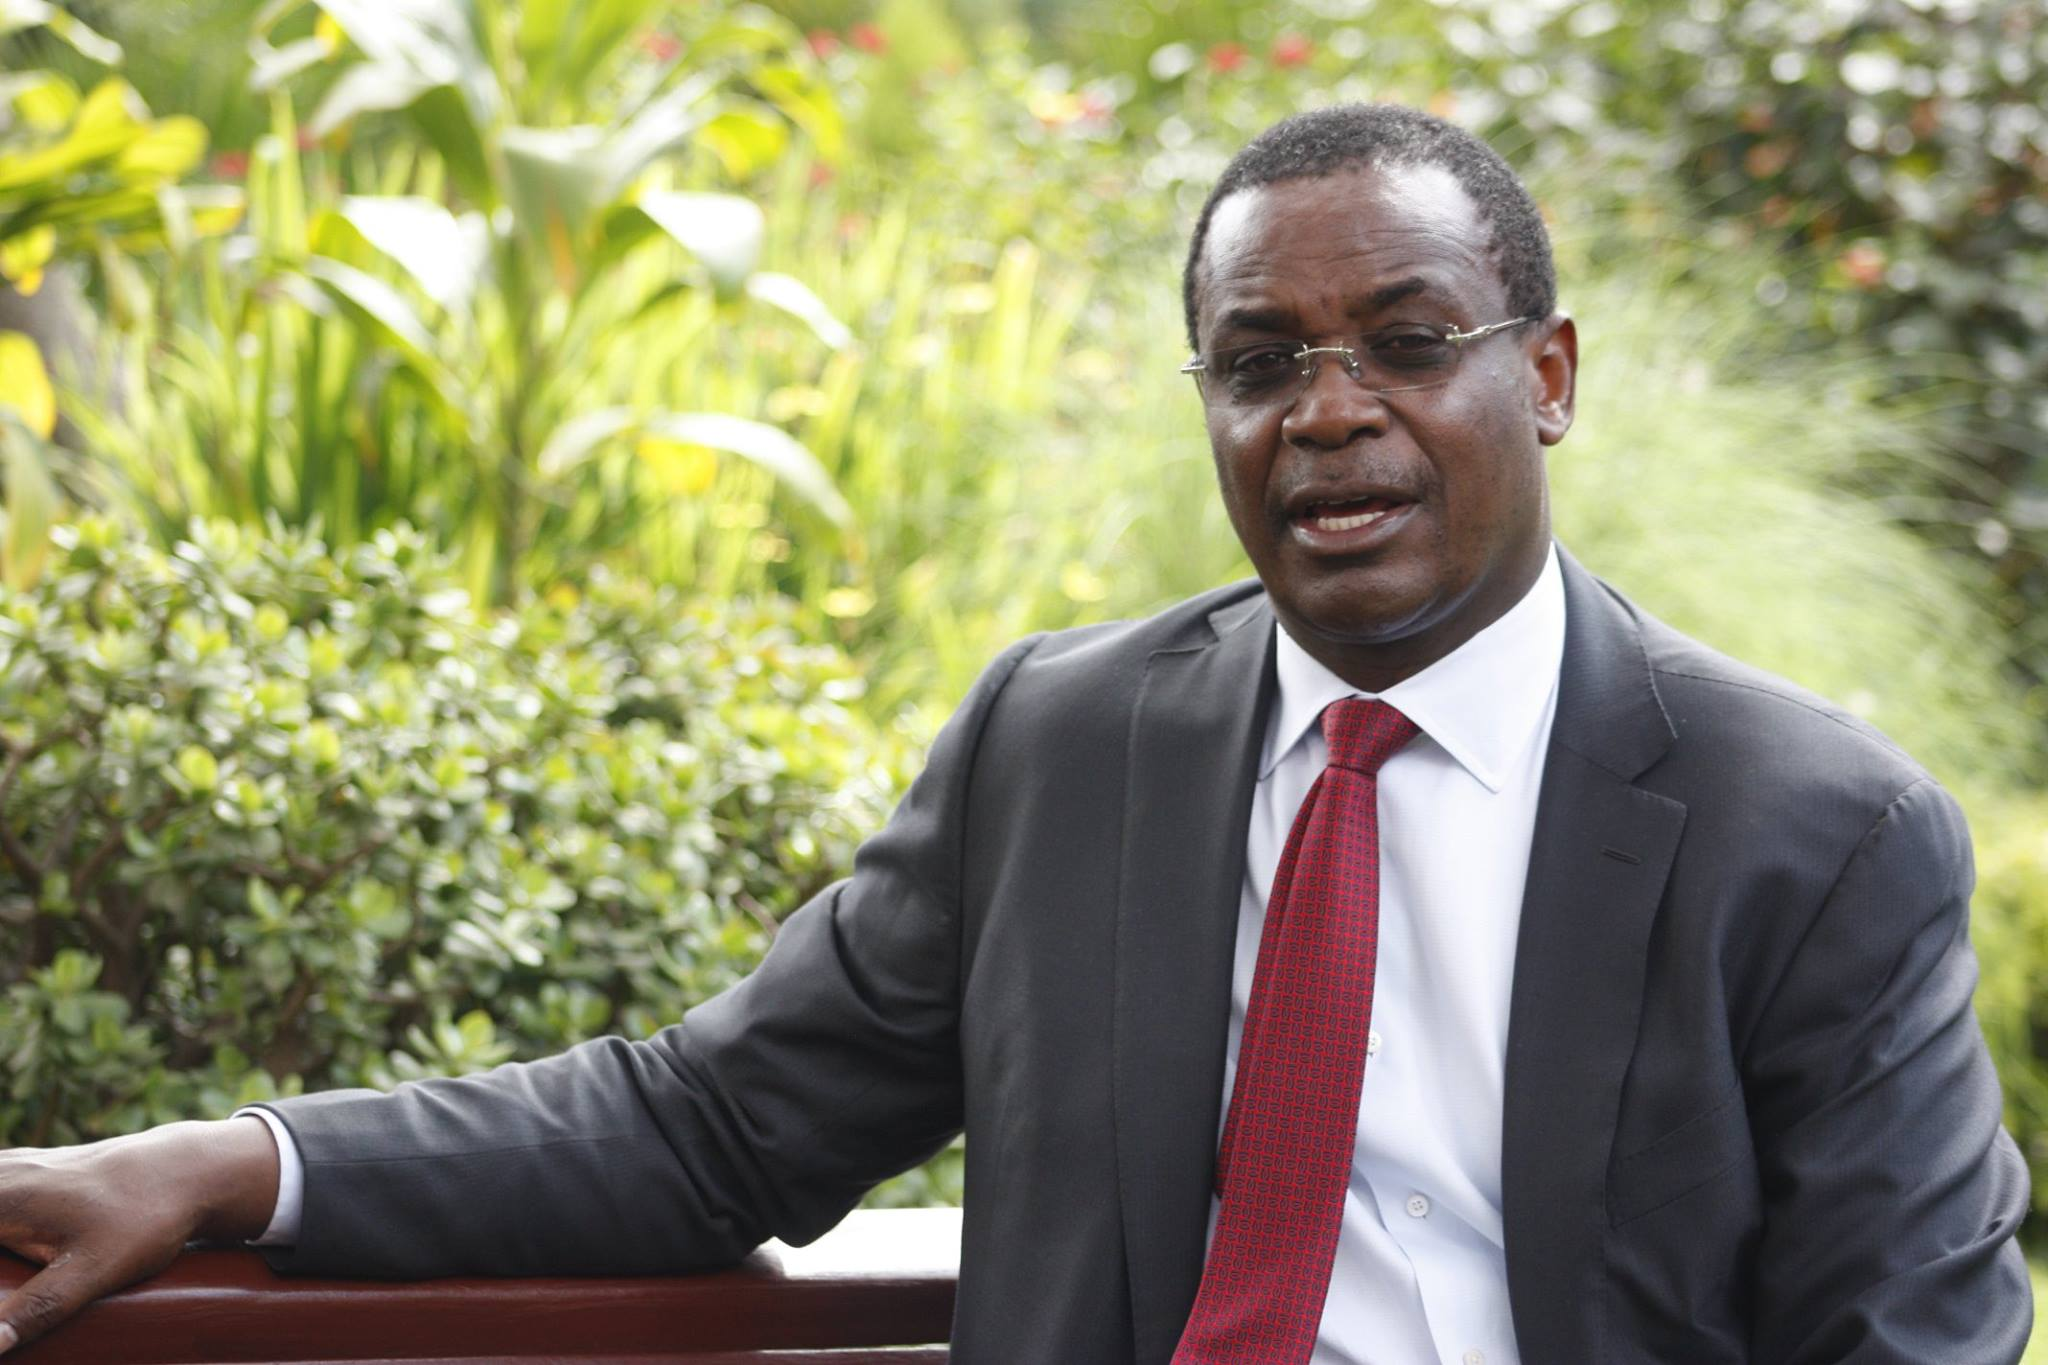 Governor Evans Kidero. He has been accused of sleeping on the job causing garbage to increase in the City. [Photo: nairobidigest.co.ke]